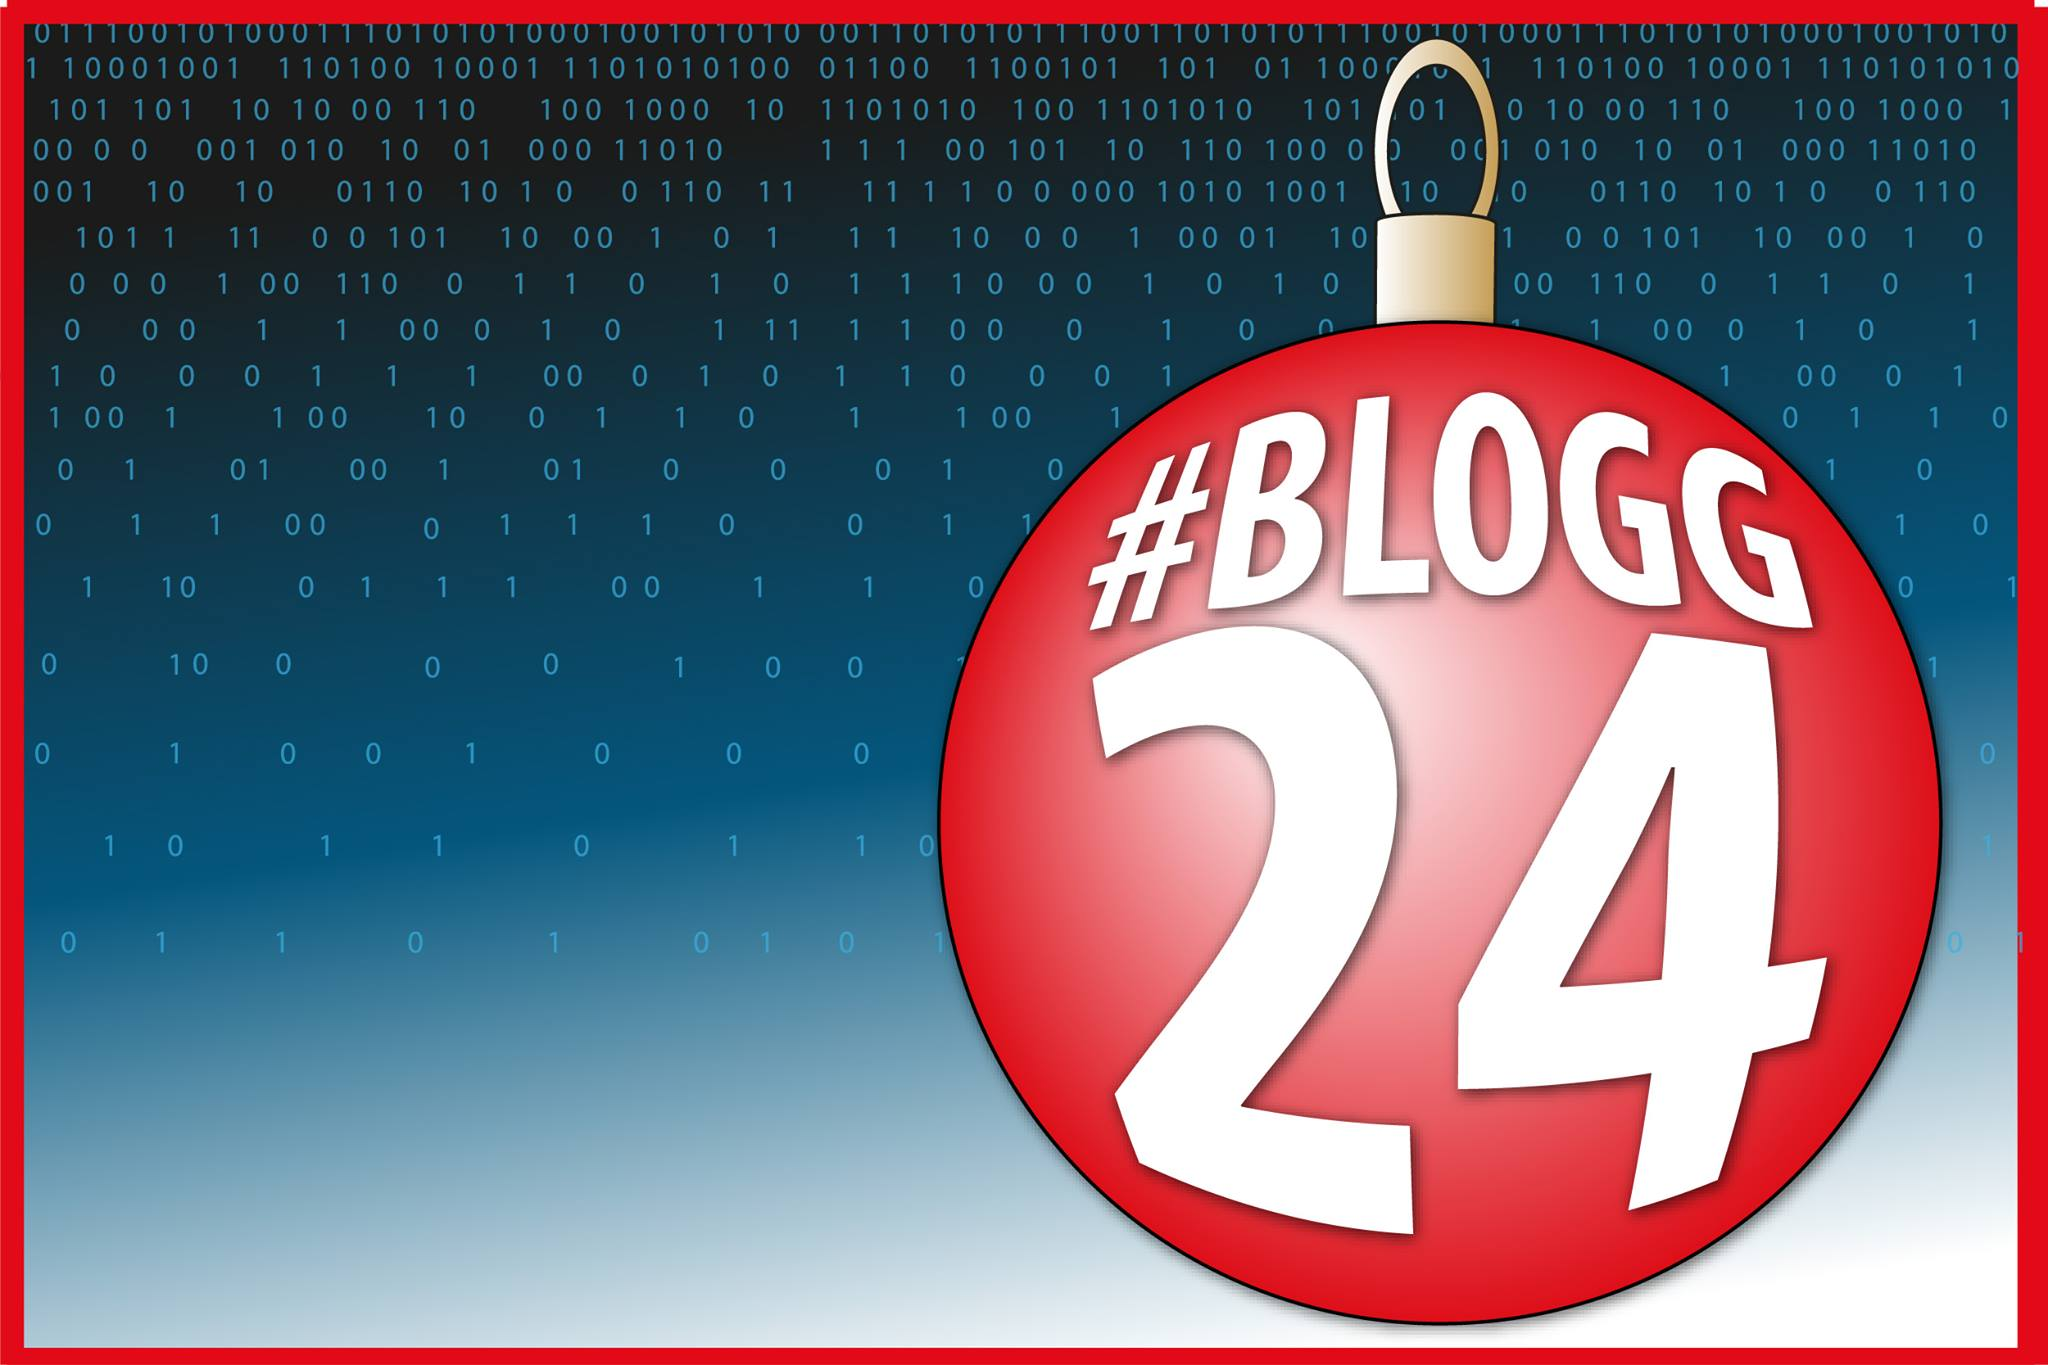 Facebook #blogg24